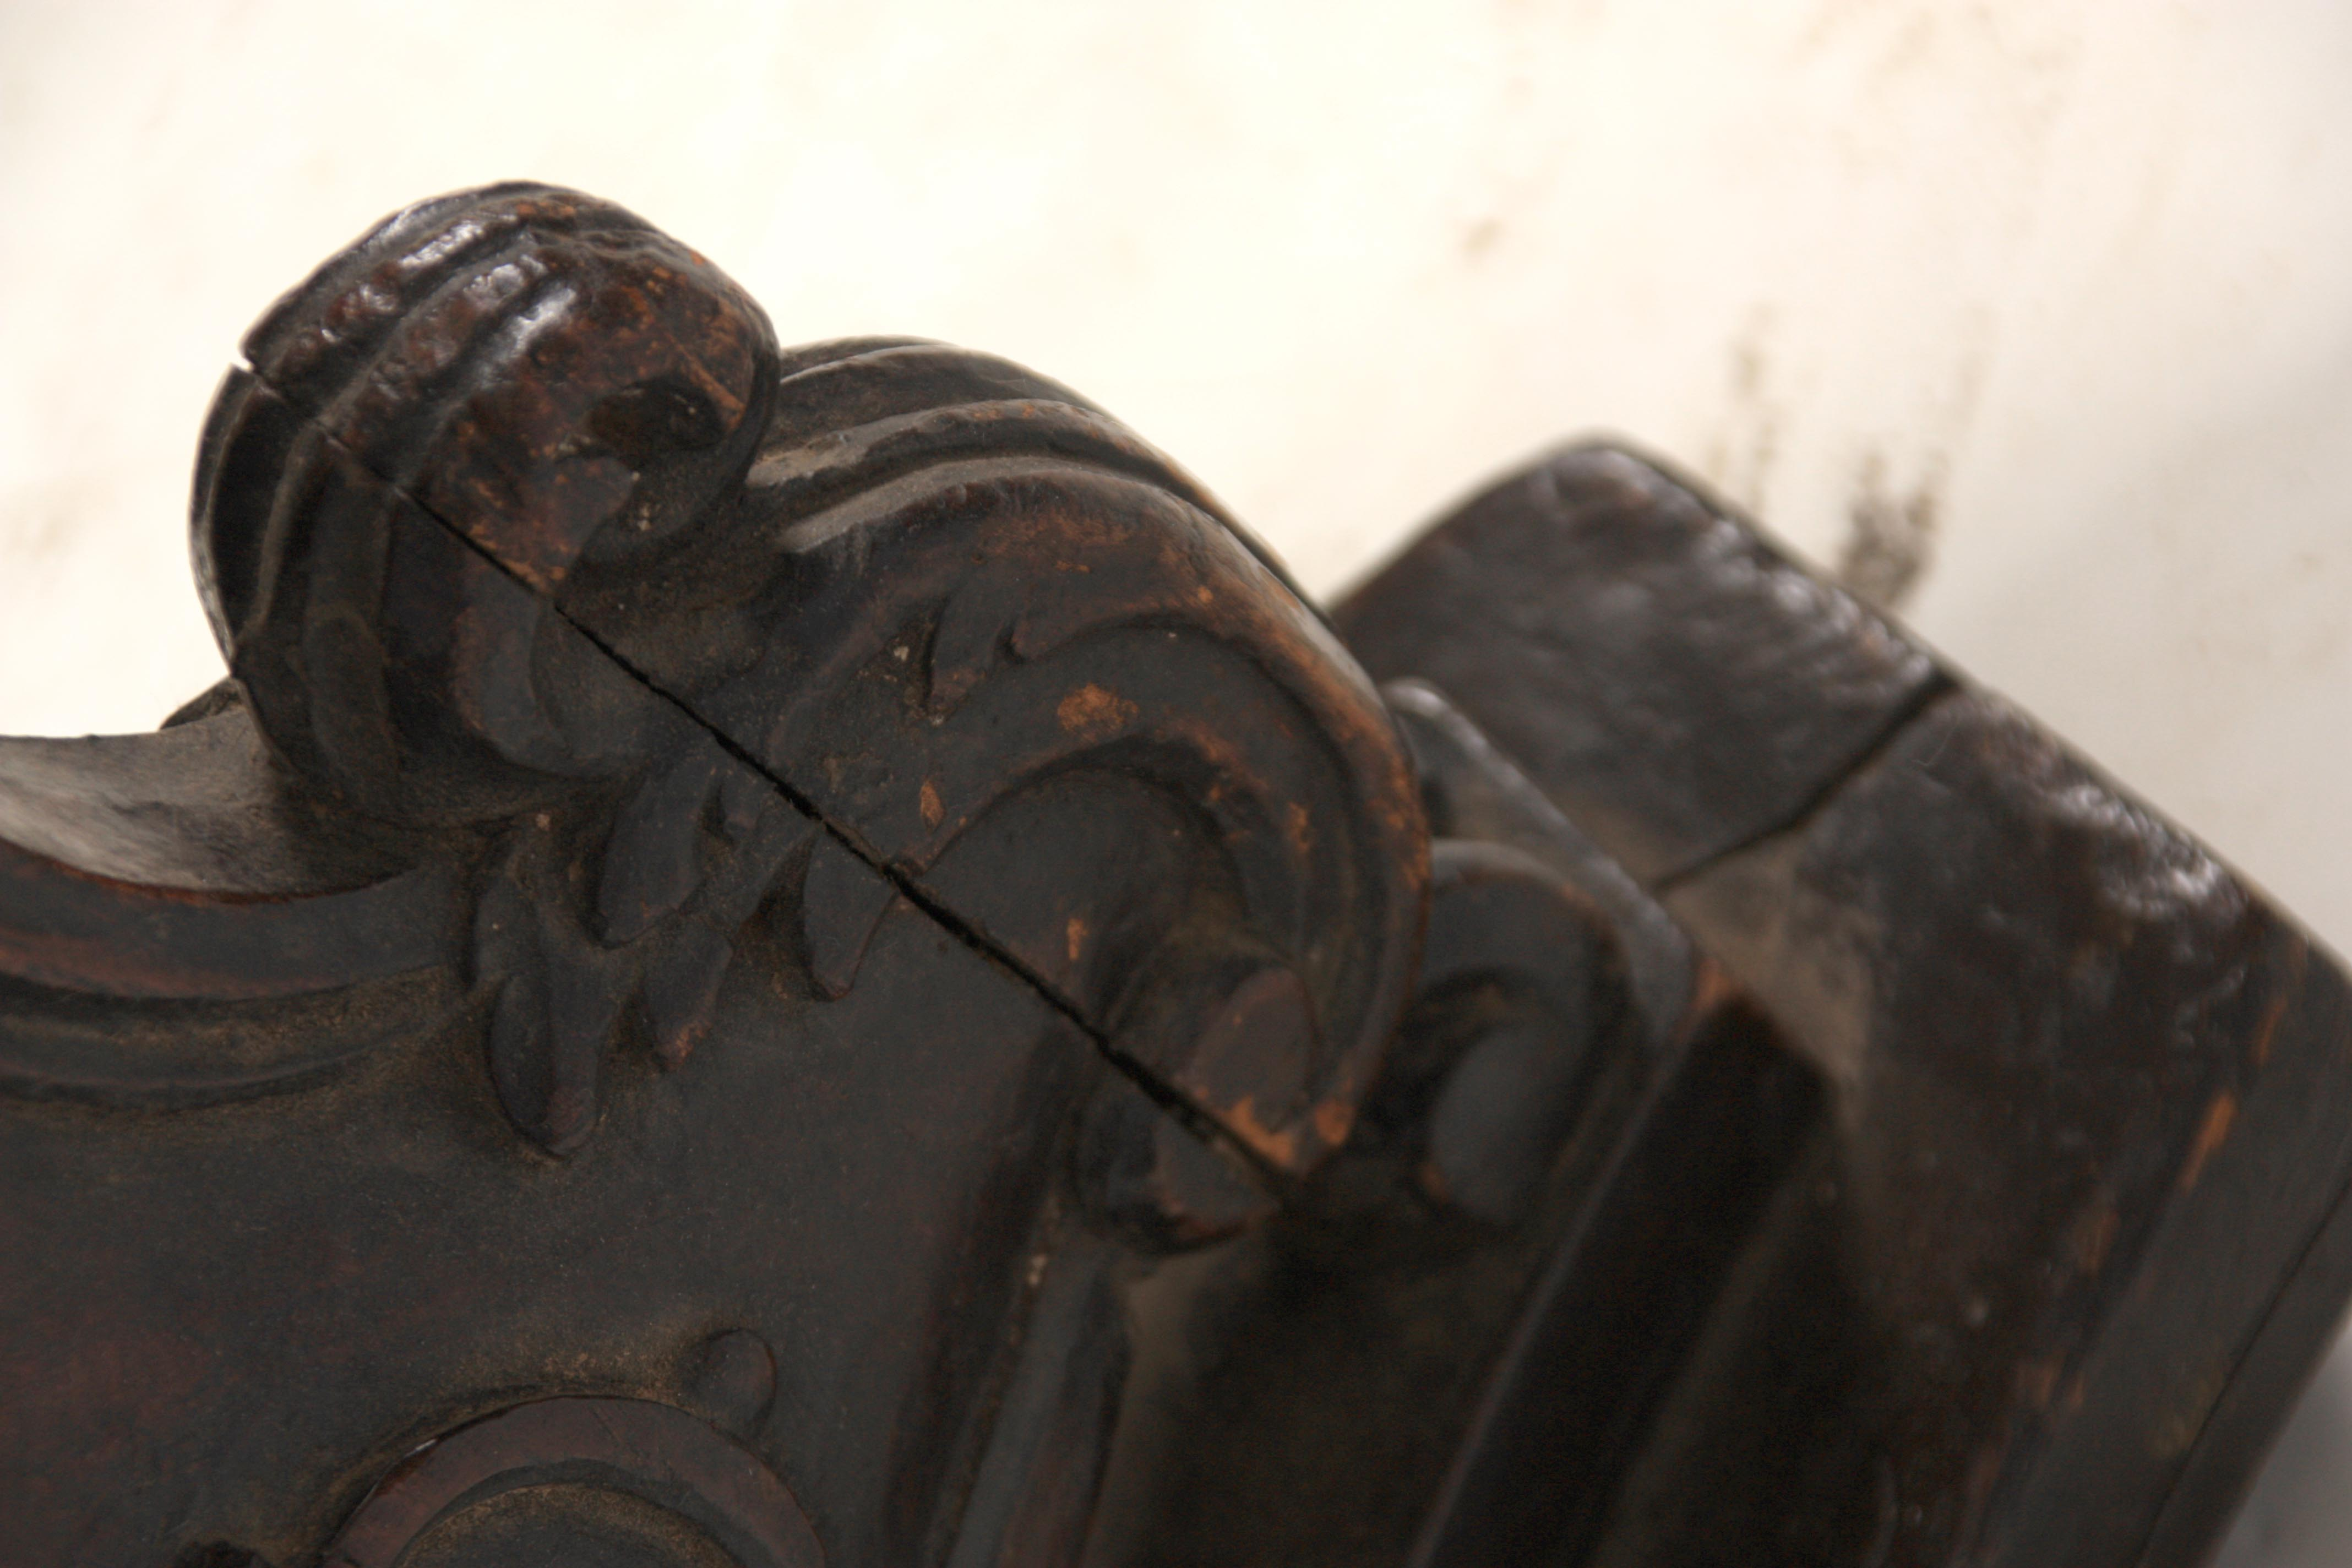 AN EARLY 18TH CENTURY ITALIAN TURNED WALNUT TORCHERE with bulbous ring turned stem and carved rococo - Image 5 of 6